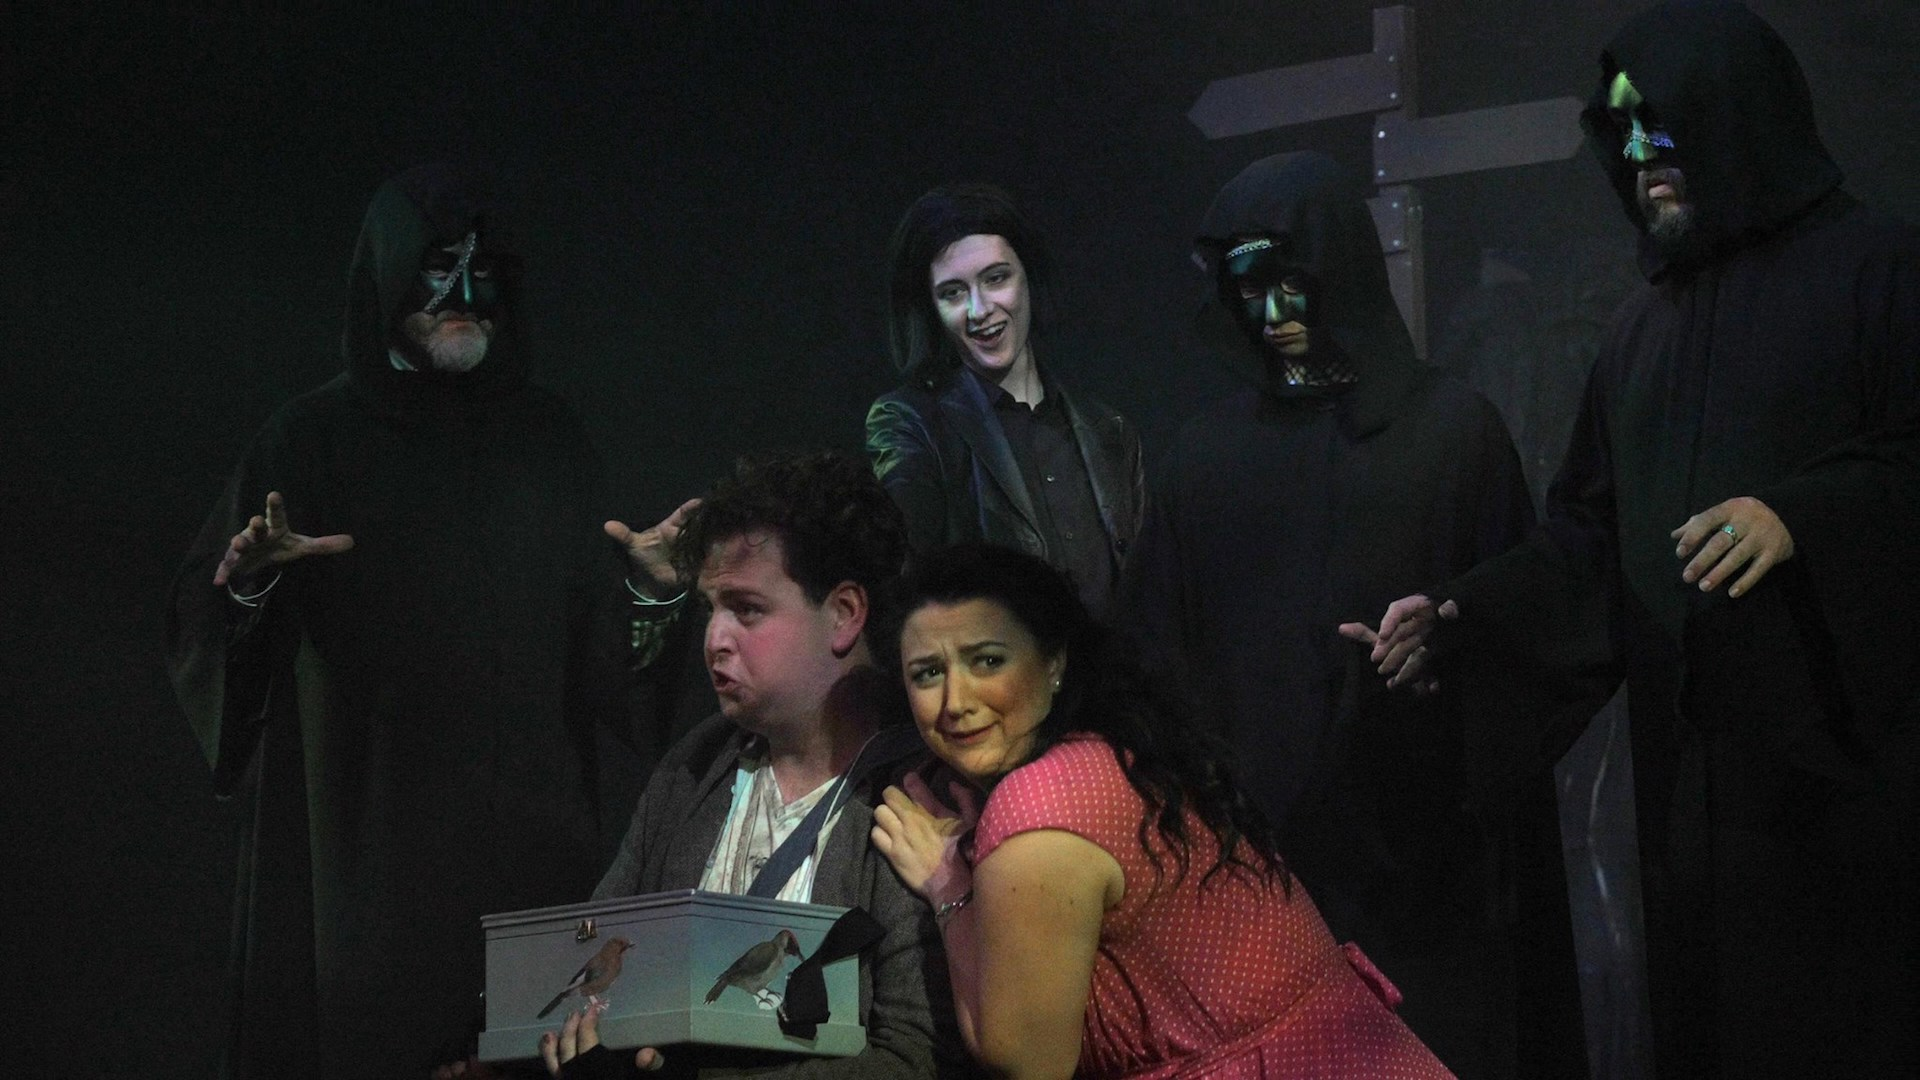 Colour photograph showing Jonathan Forbes Kennedy, baritone, on stage with fellow cast members in the role of Papageno in Fife Opera's 2017 production of Mozart's The Magic Flute (Courtesy of Douglas Taylor for Fife Opera)